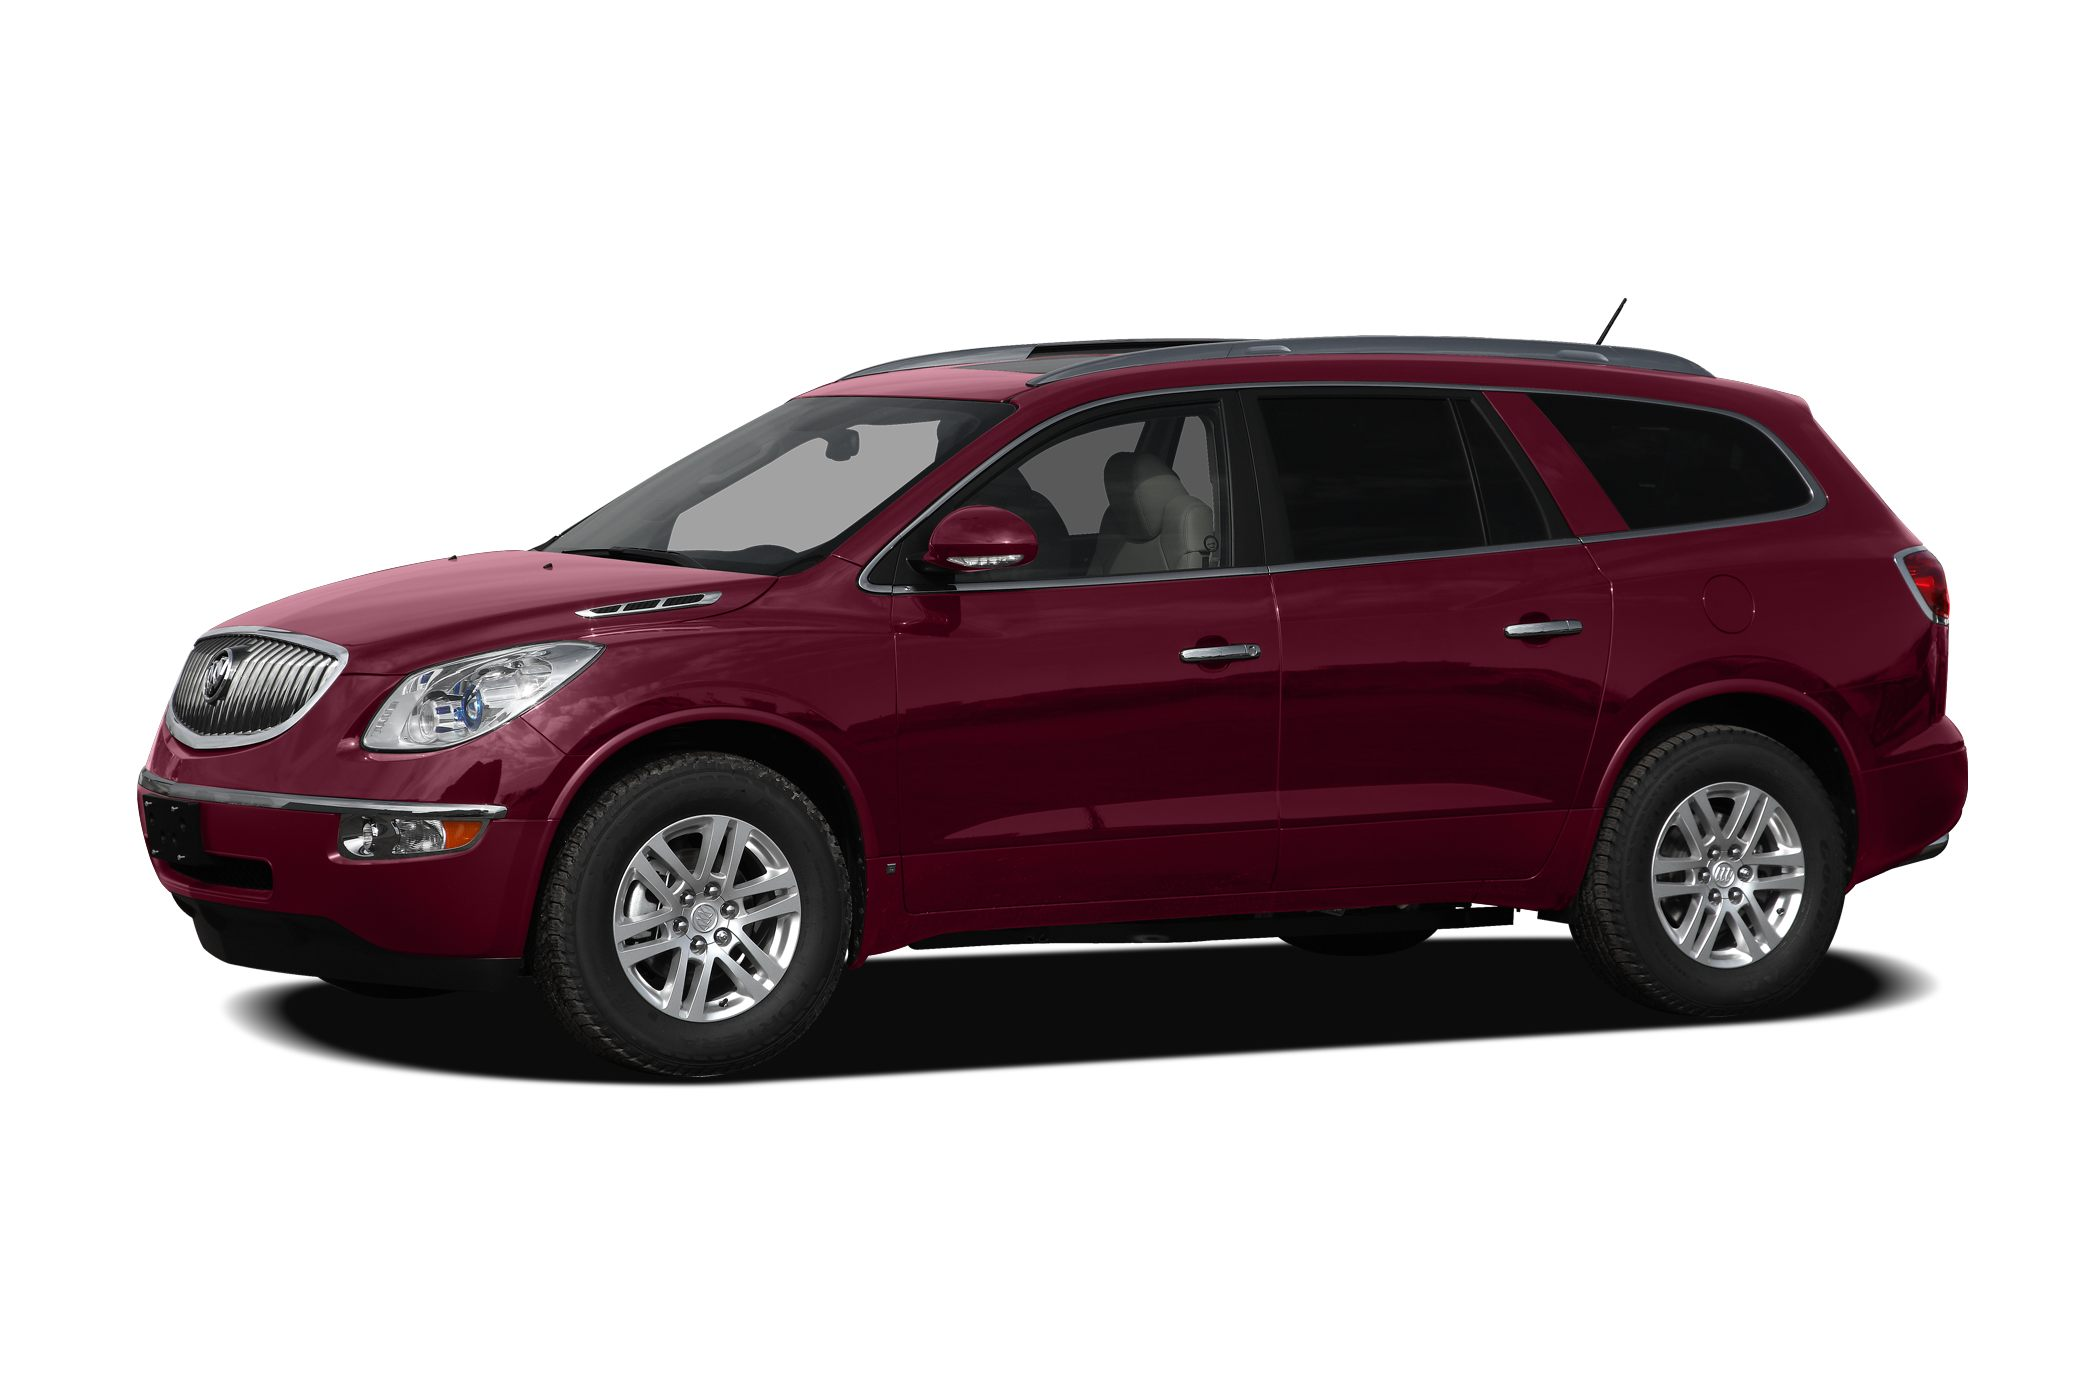 2010 Buick Enclave 1XL SUV for sale in Erie for $20,000 with 85,557 miles